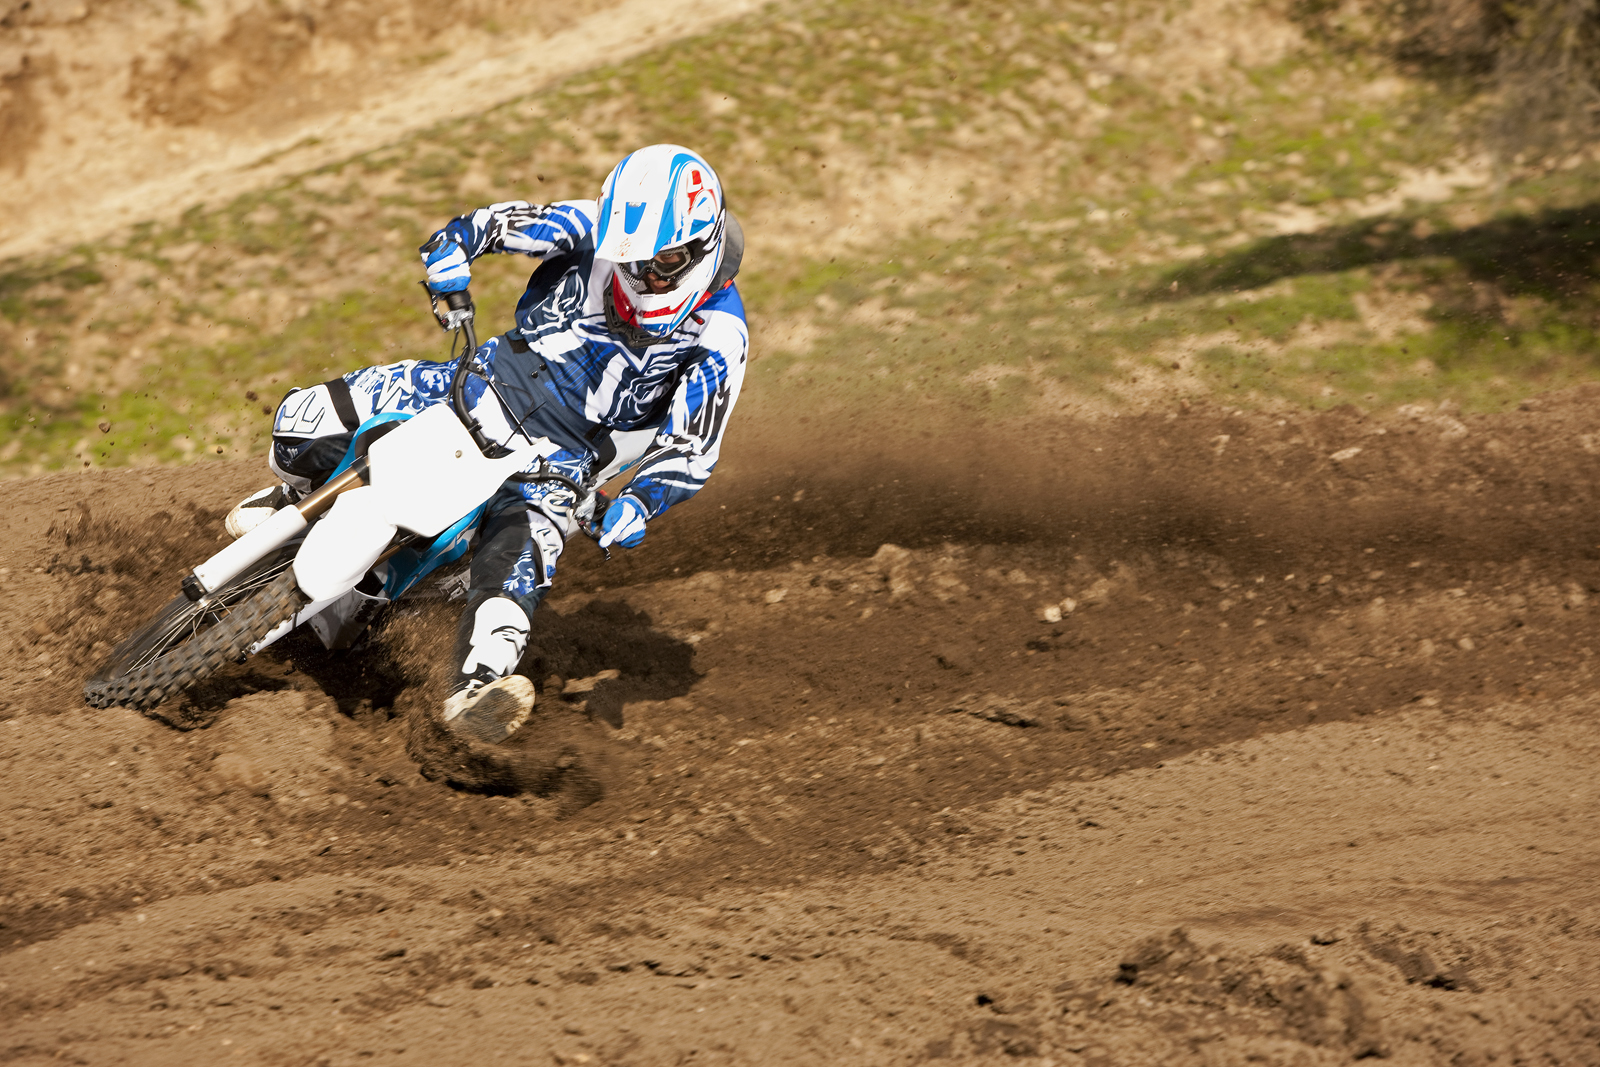 '.2010 Zero MX Electric Motorcycle: Zaca Station - Low Burm Foot Down.'